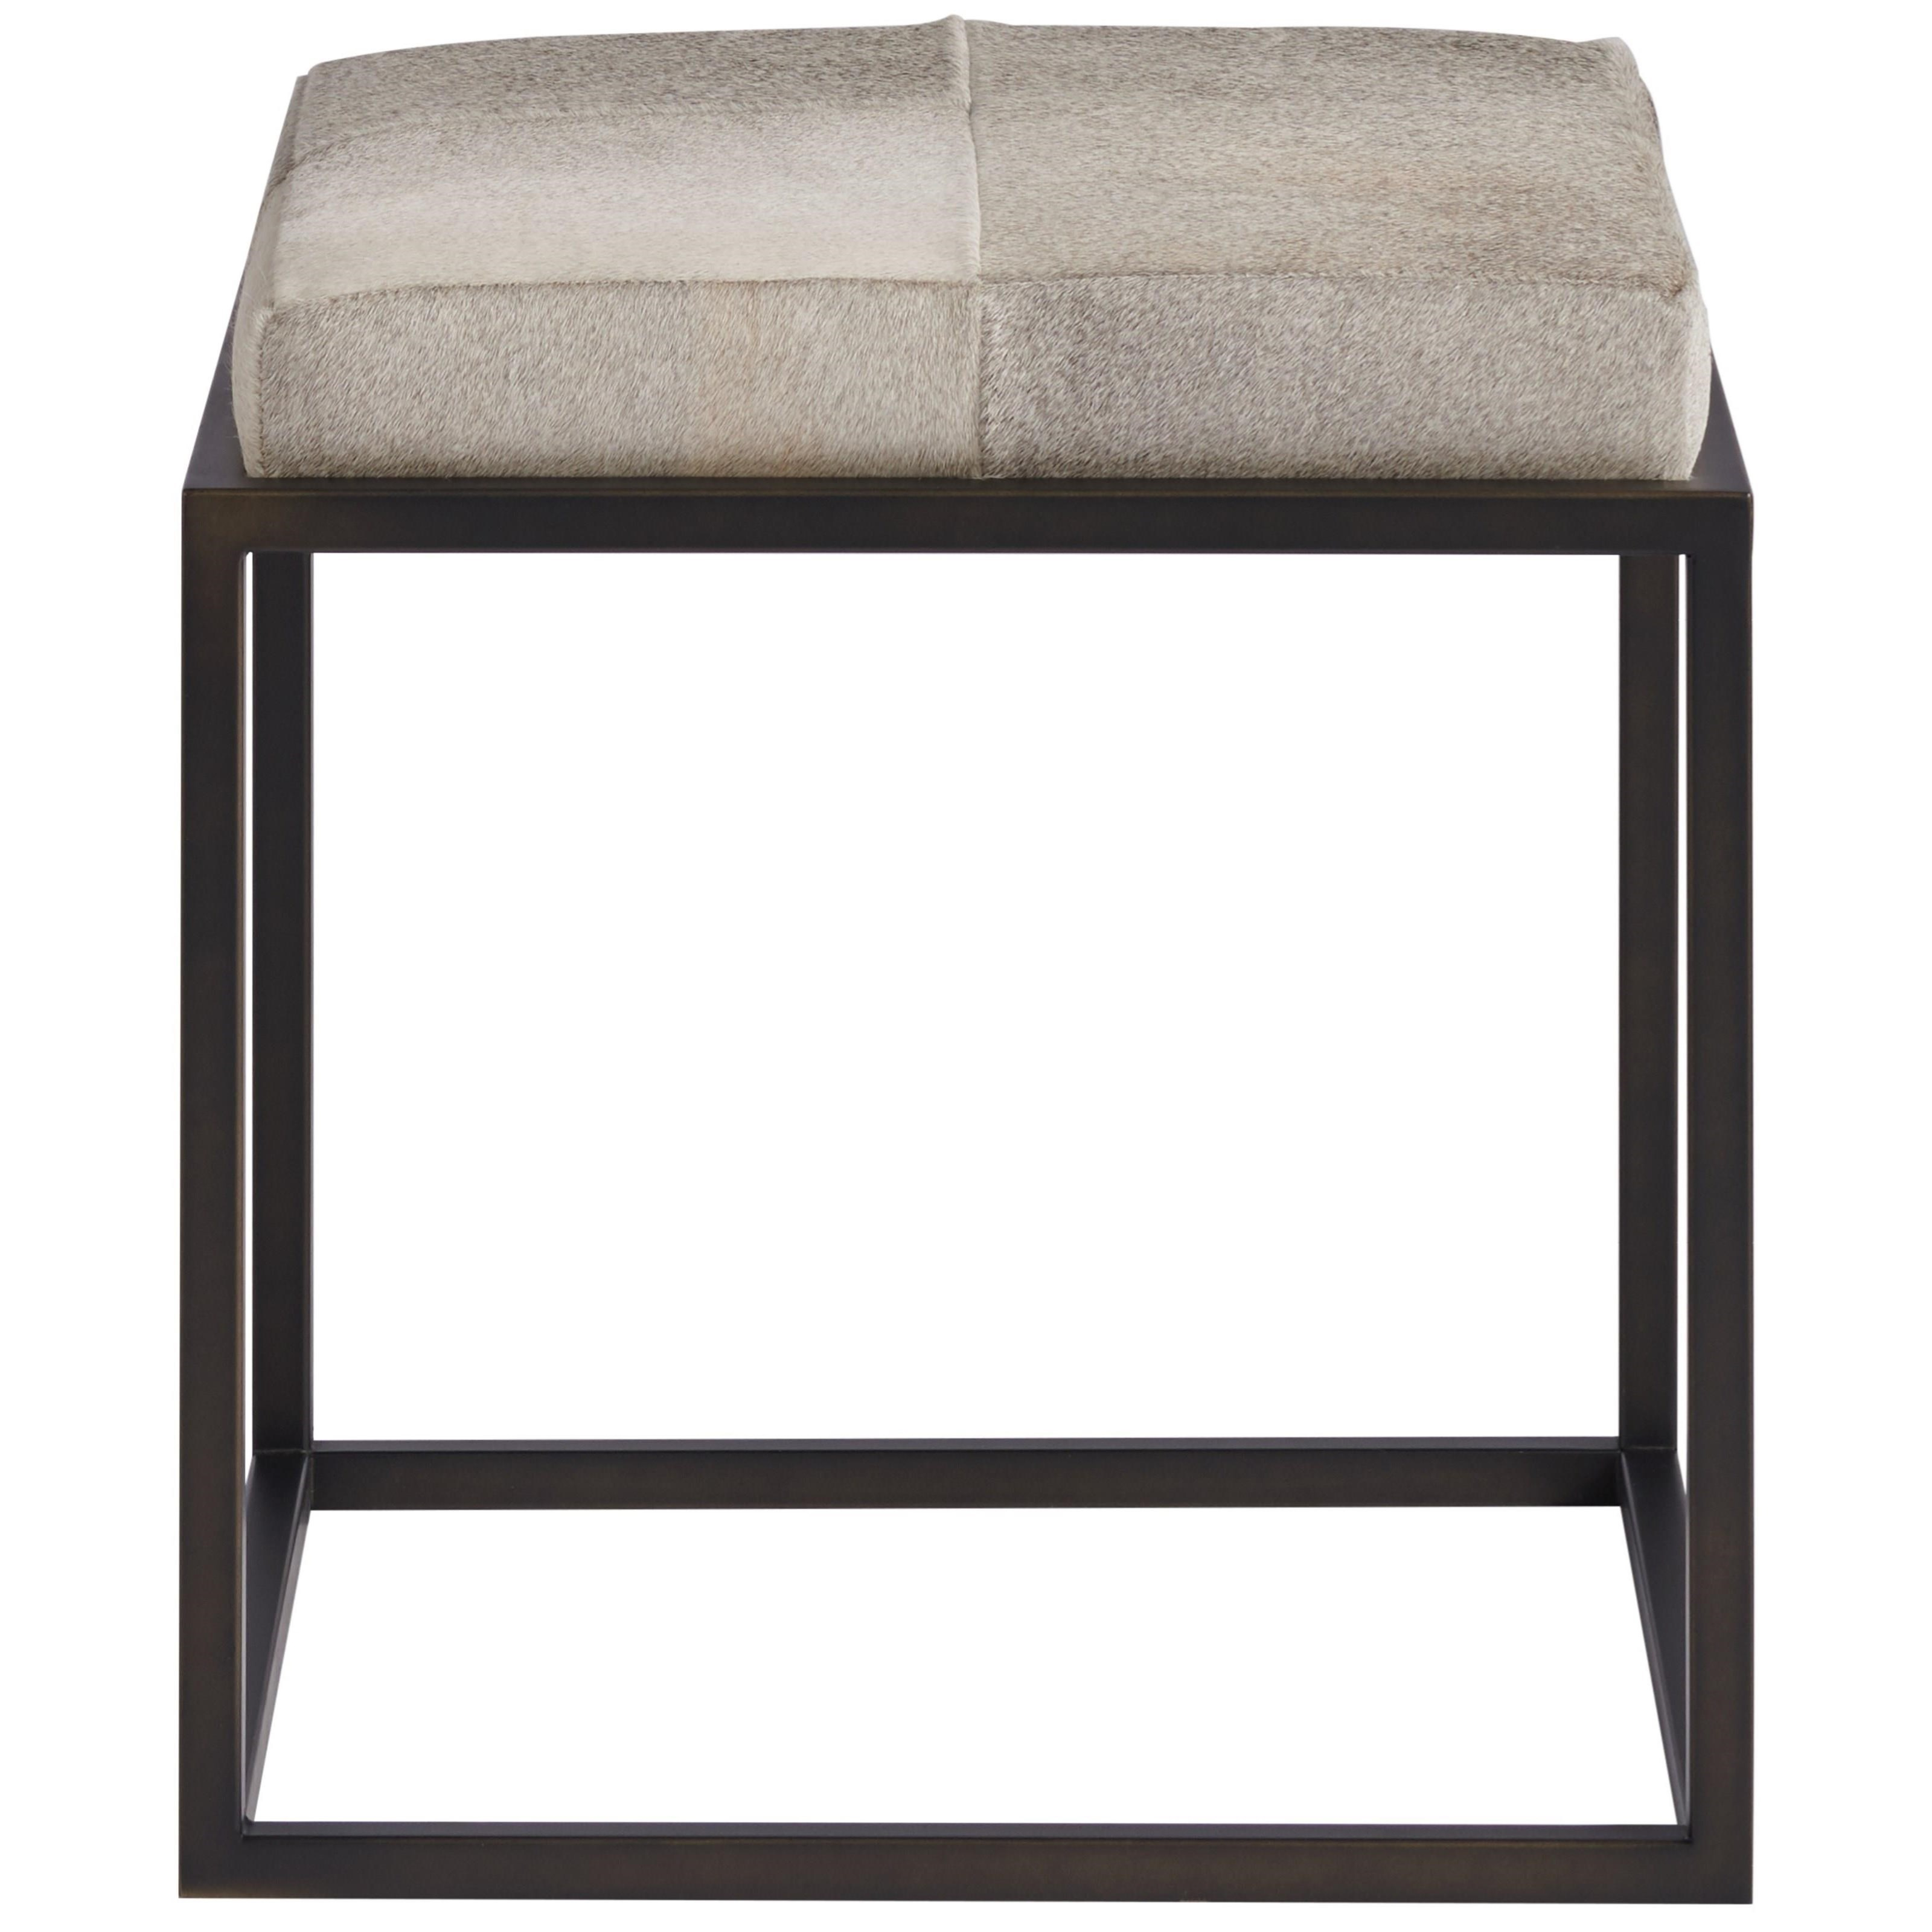 Accents Safari Ottoman by Universal at Zak's Home